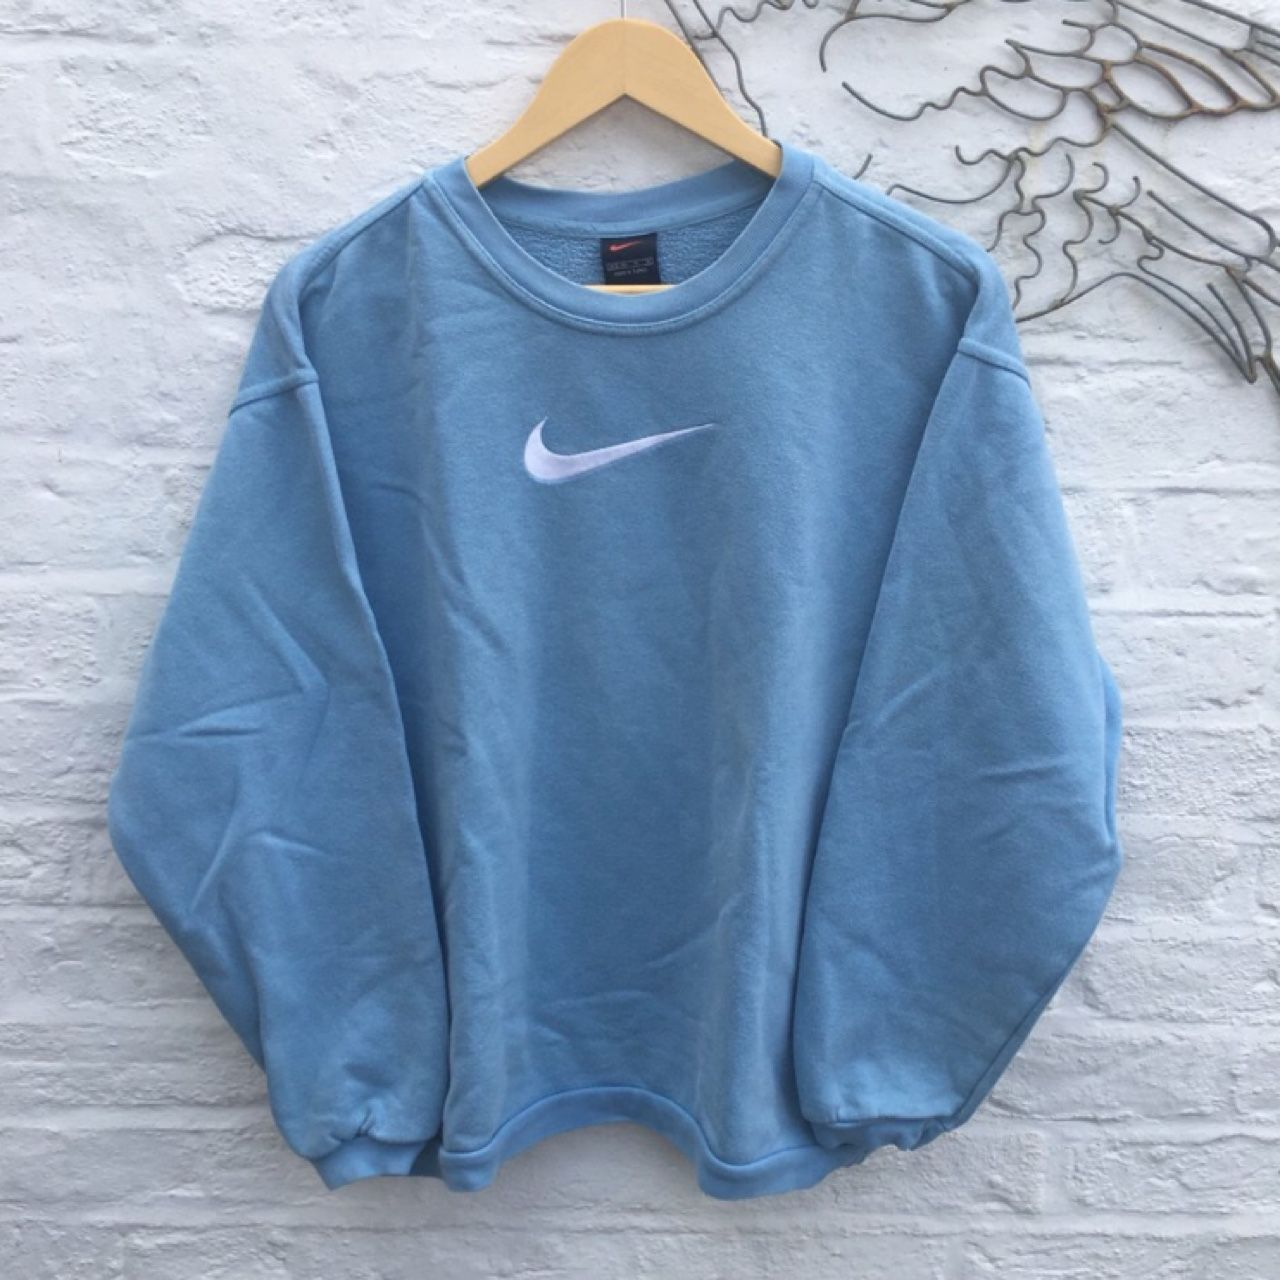 Pin By Tesselvantuil On Style Vintage Nike Sweatshirt Clothes Comfy Outfits [ 1280 x 1280 Pixel ]